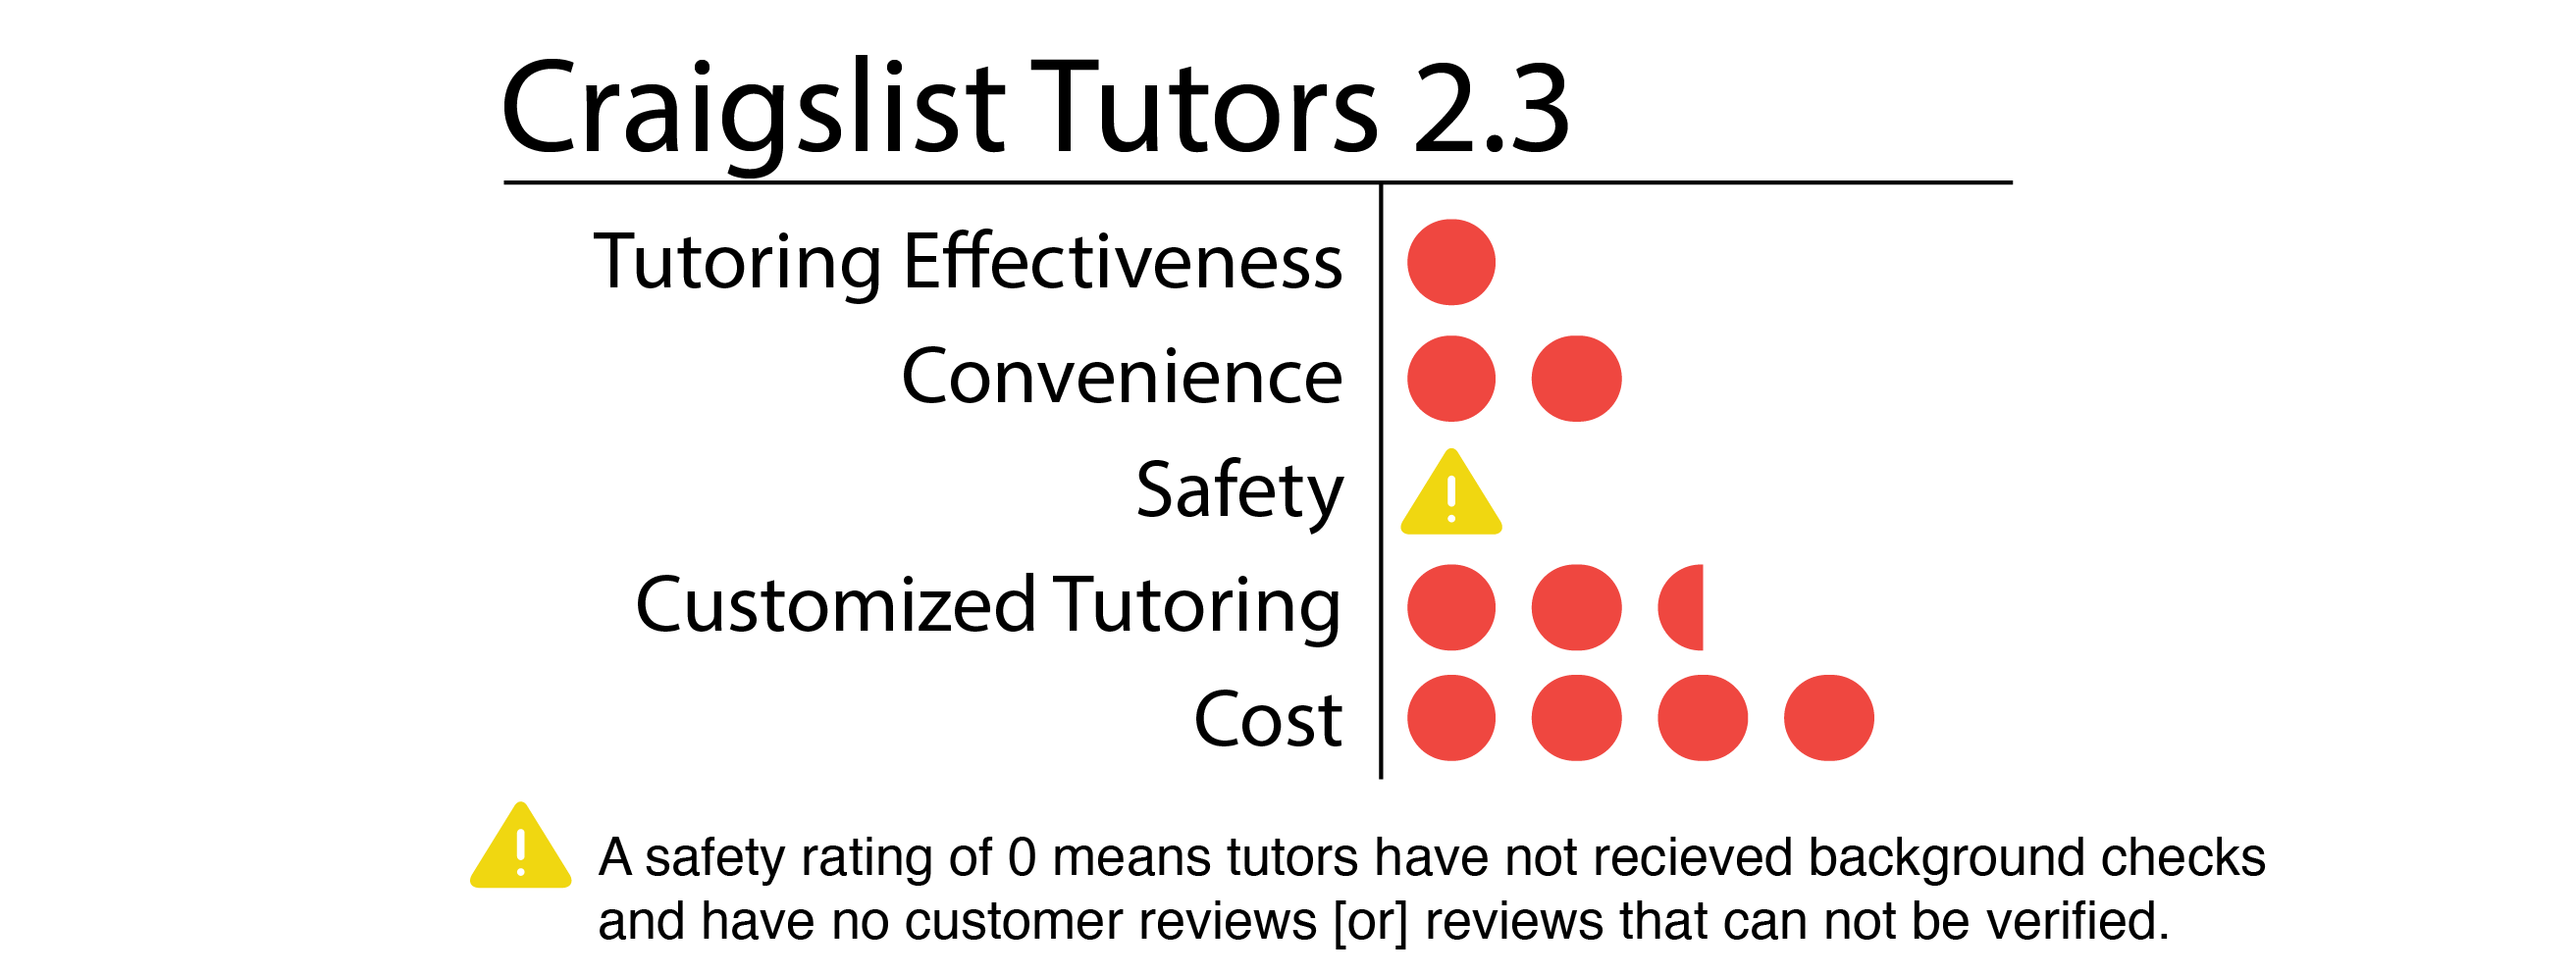 Straight A All Honors Student Tutoring How much should I charge?